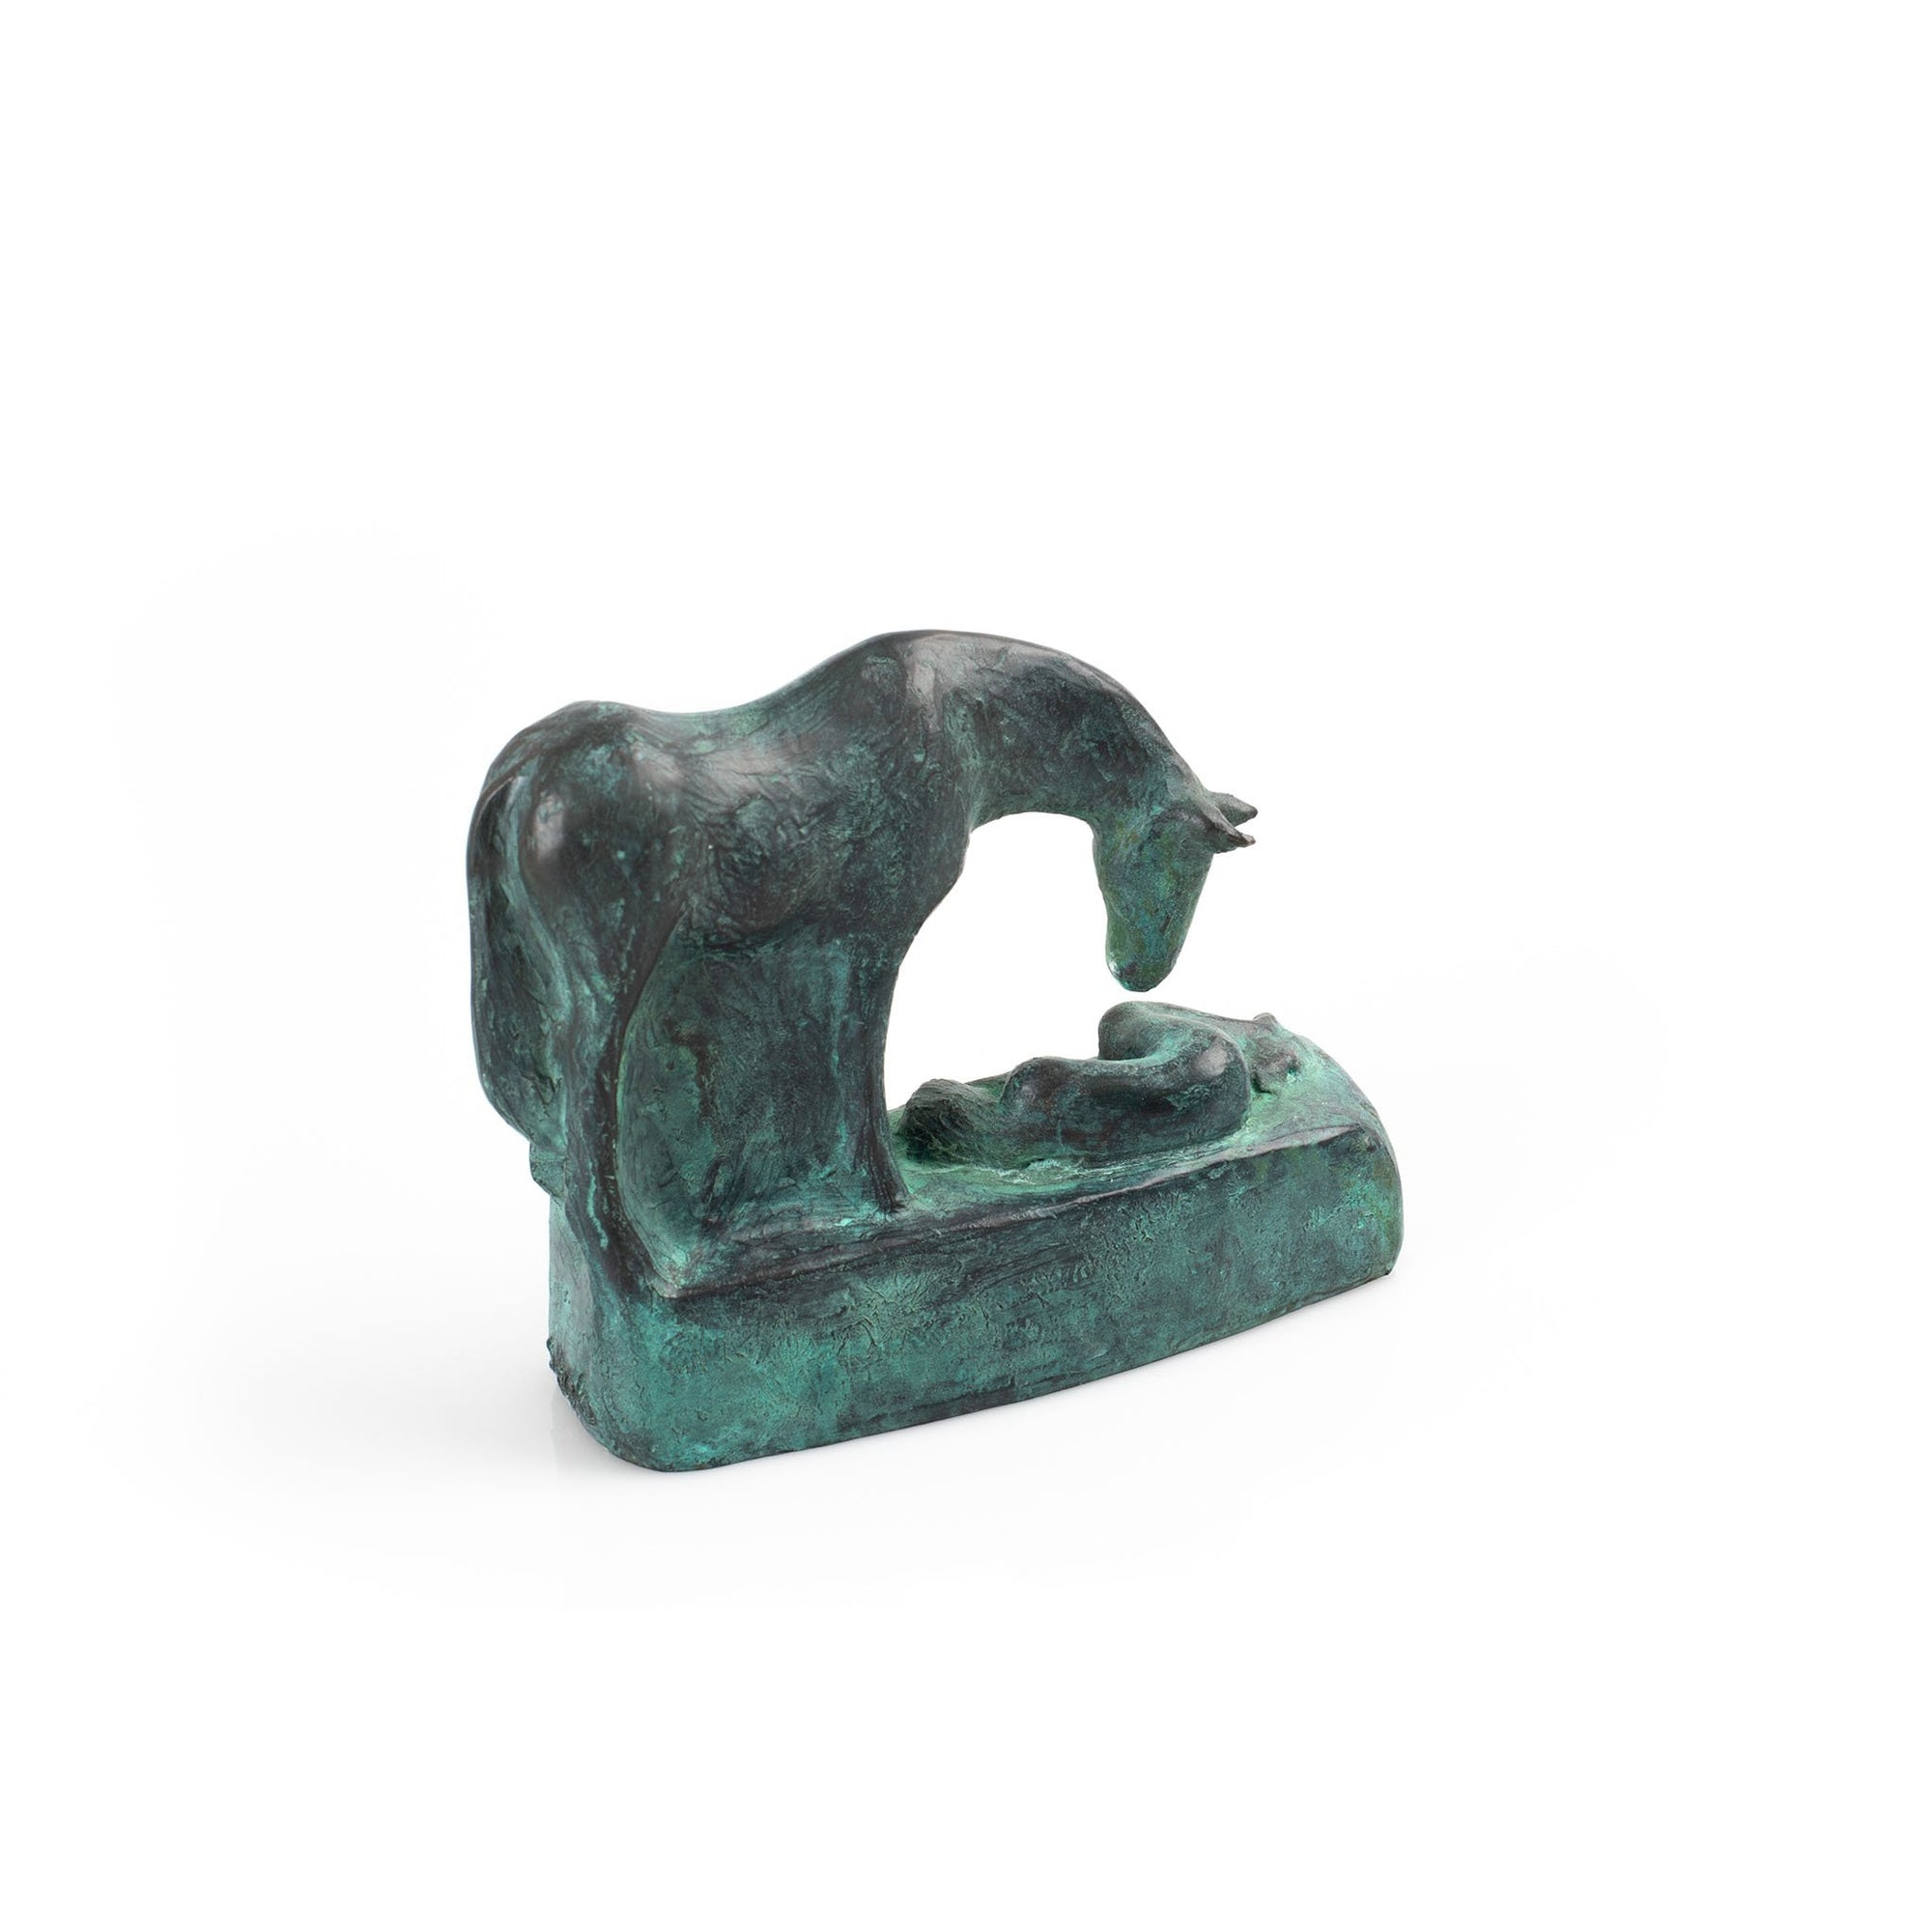 Lying open edition bronze resin sculpture by Sophie Howard, available at Padstow Gallery, Cornwall